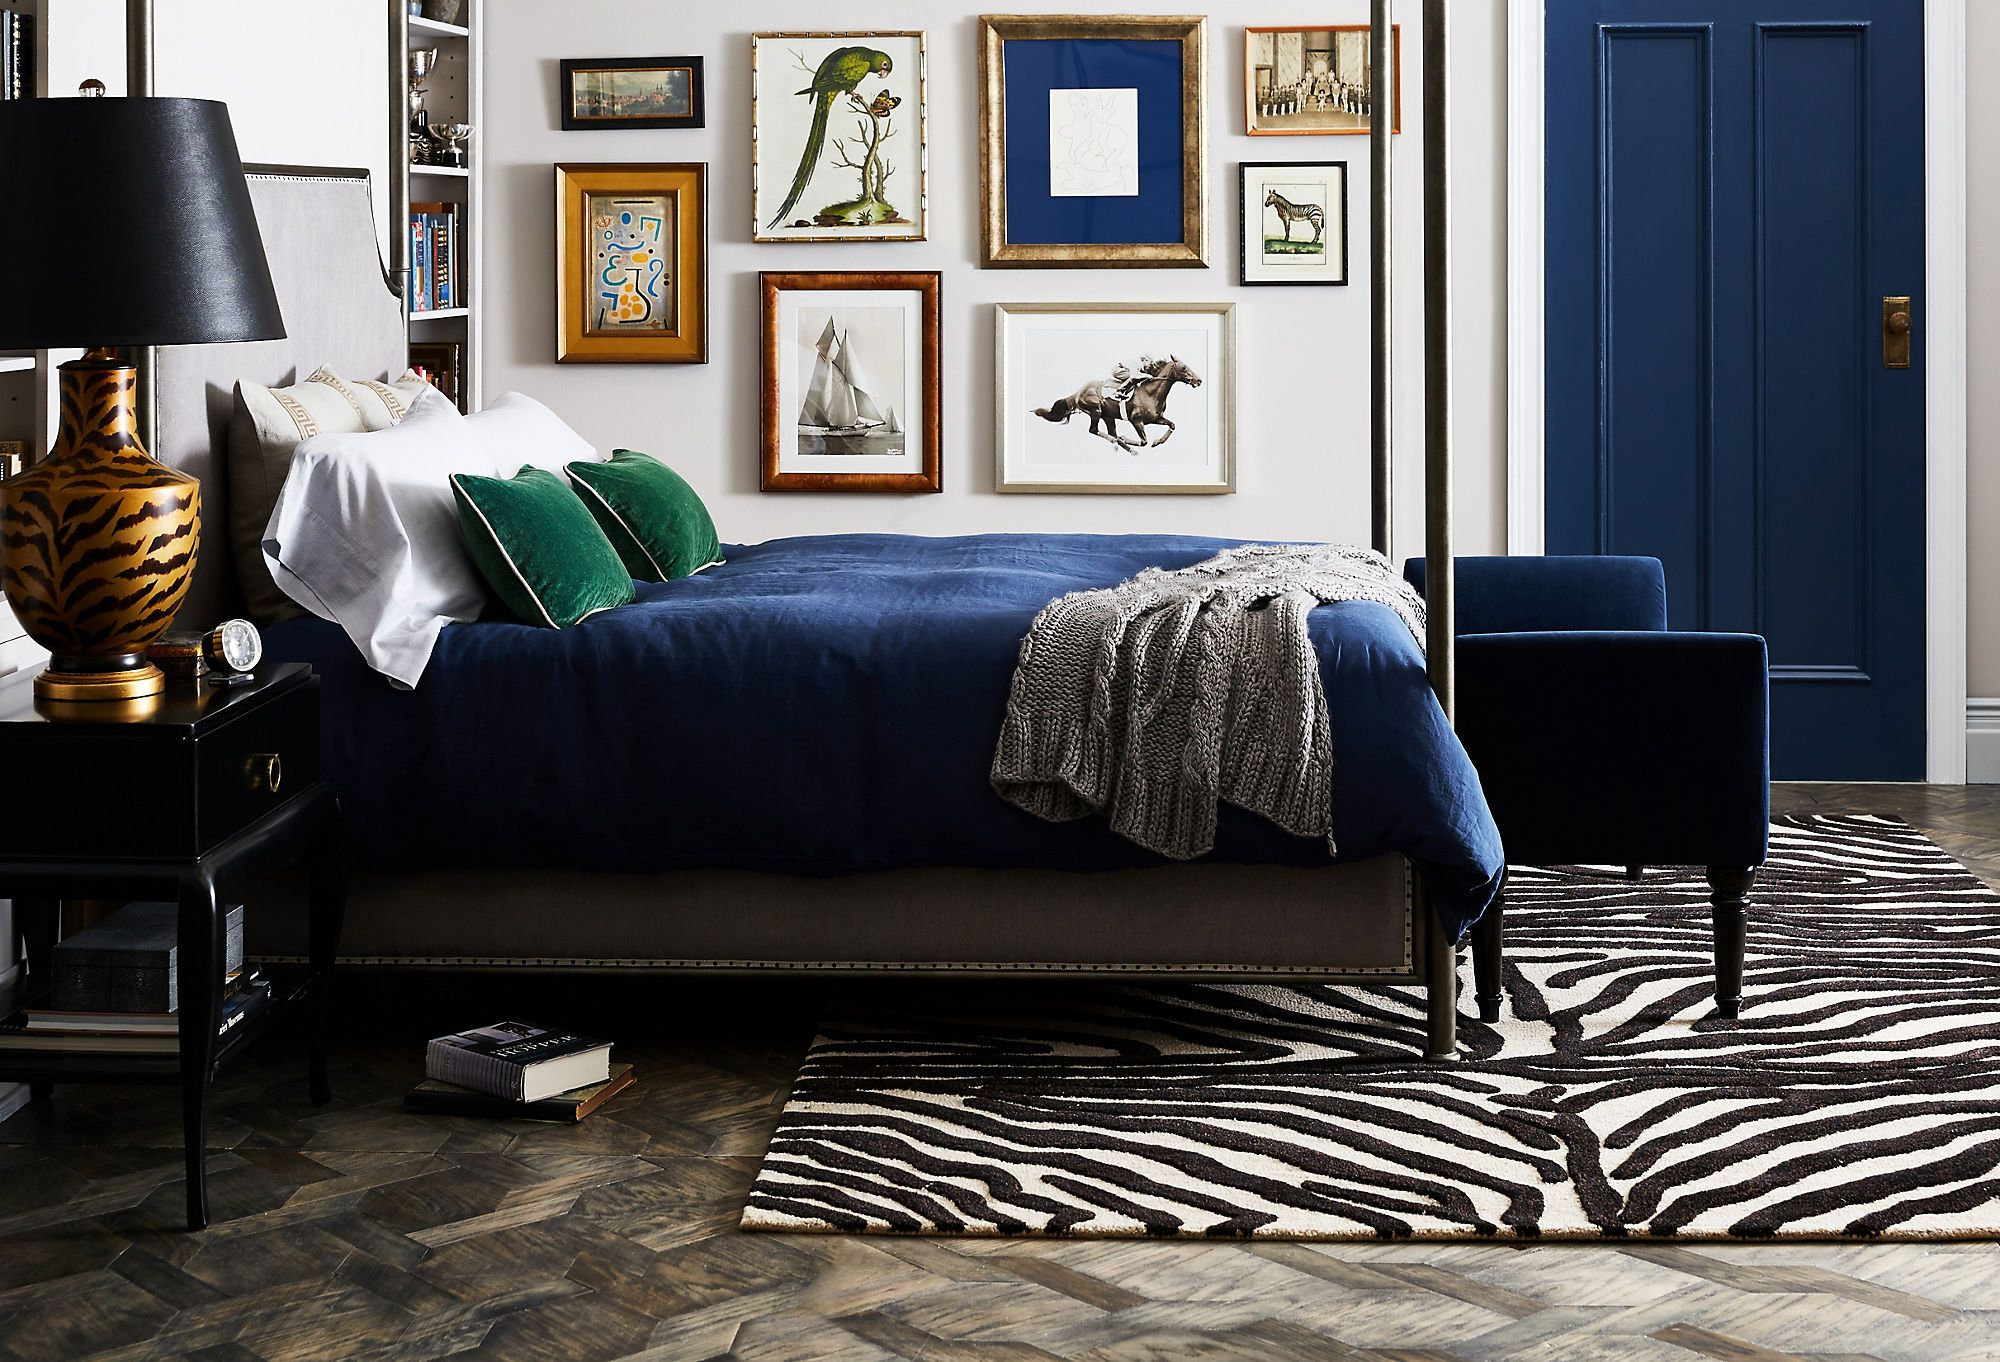 Personal Space: A Cool & Collected Bedroom | home decor | Pinterest ...